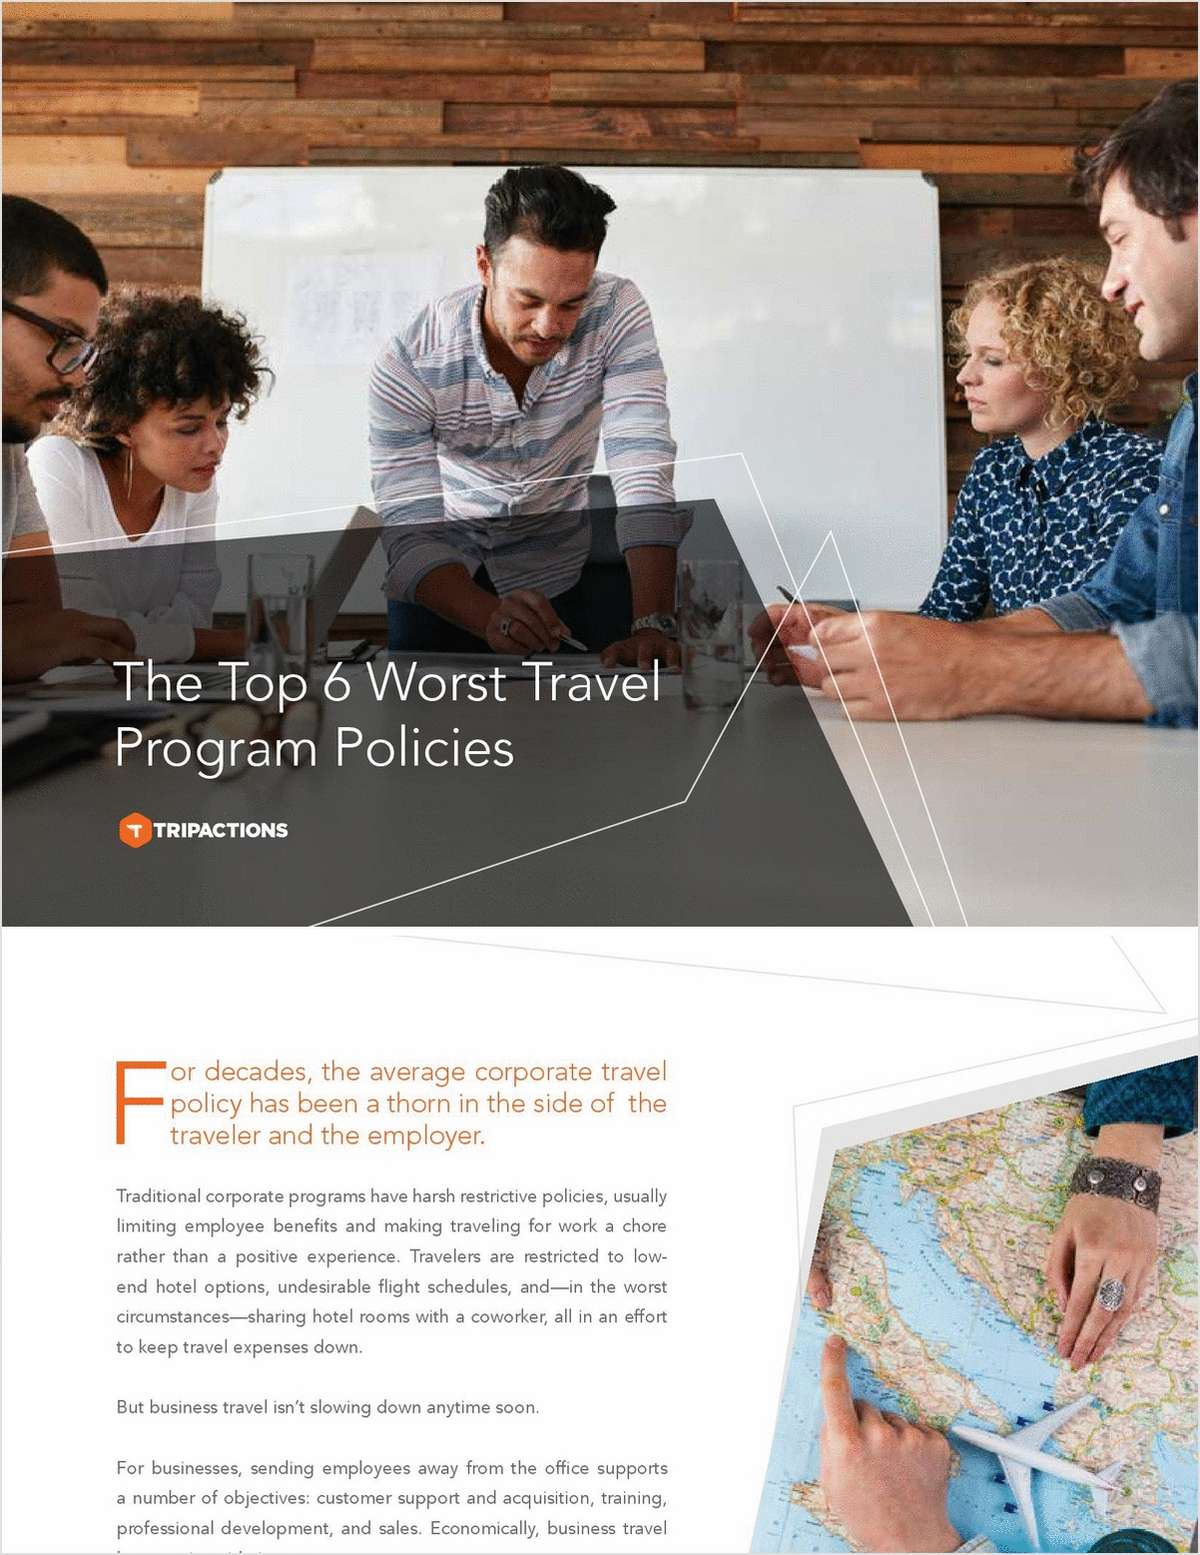 The Top 6 Worst Travel Program Policies